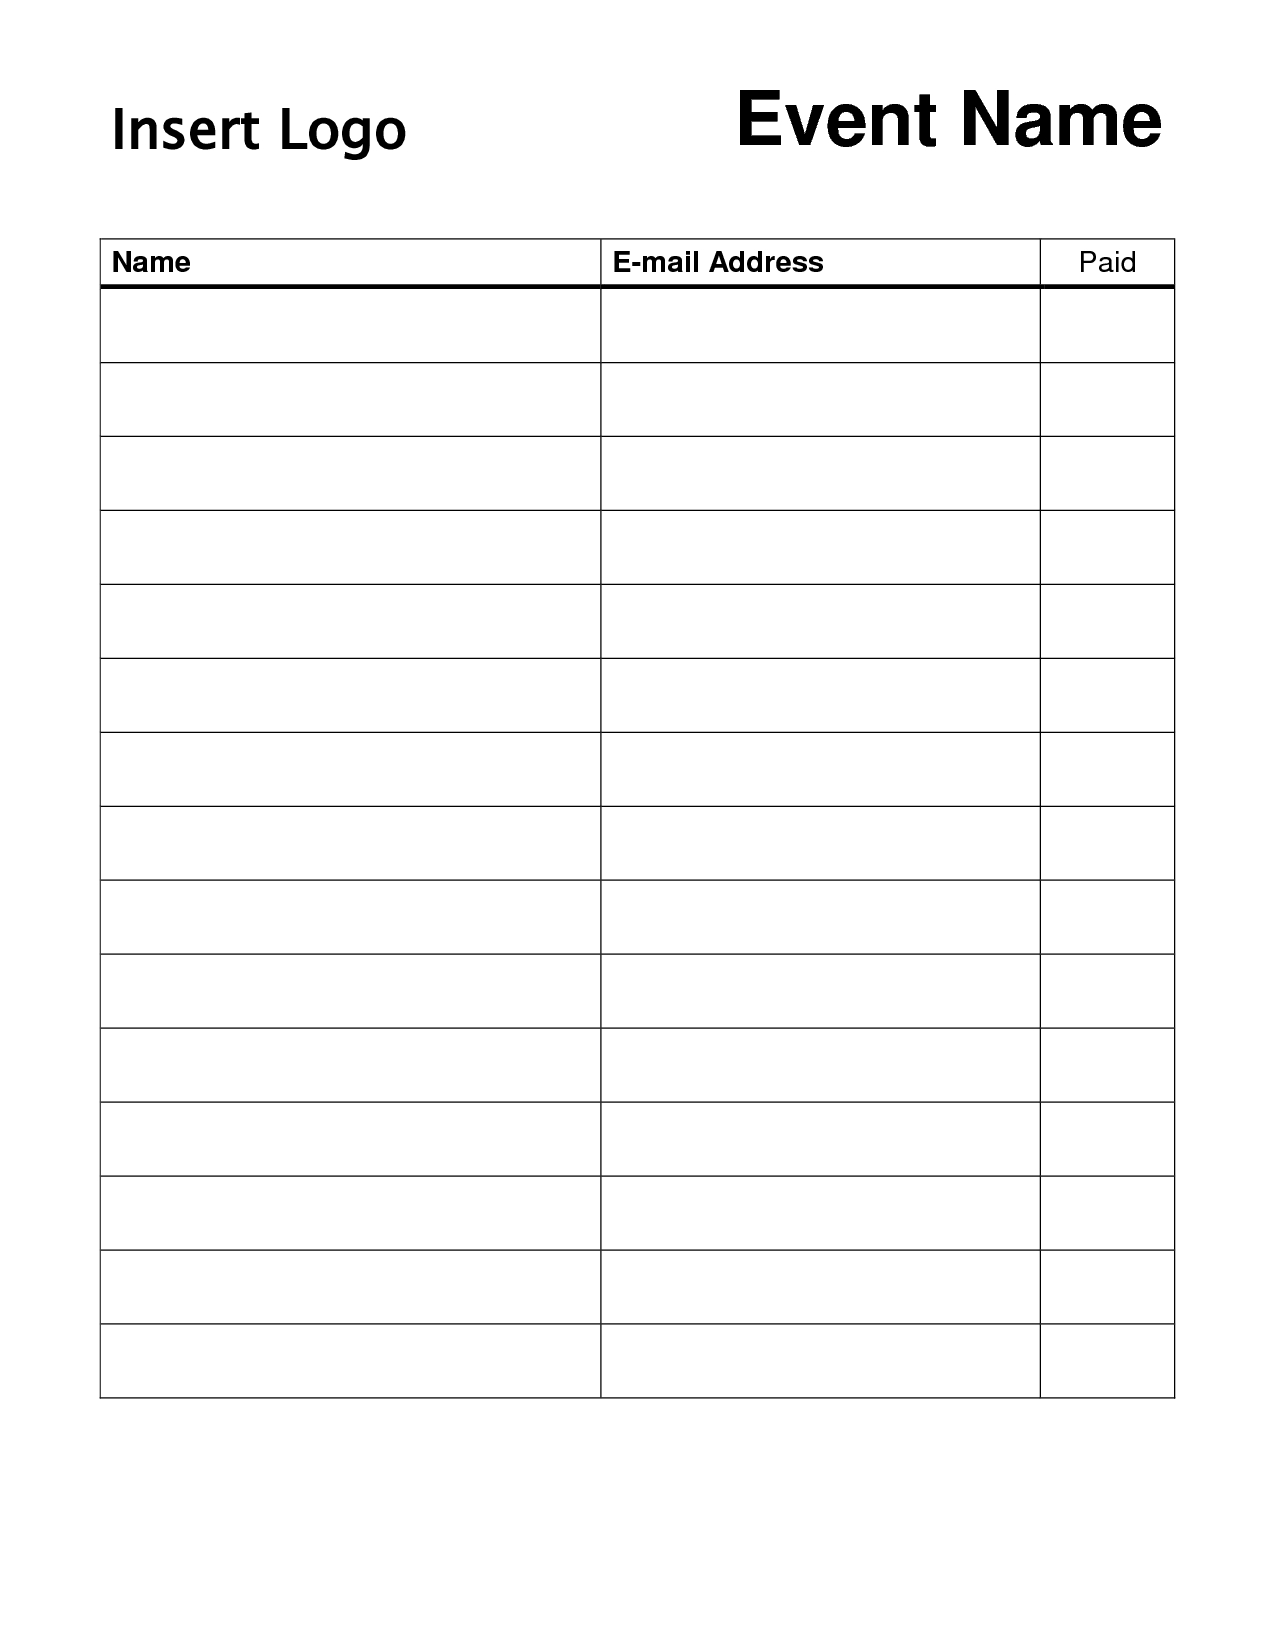 003 Template Ideas Event Sign In Sheet Top Excel Up ~ Thealmanac Regarding Event Sign In Sheet Template